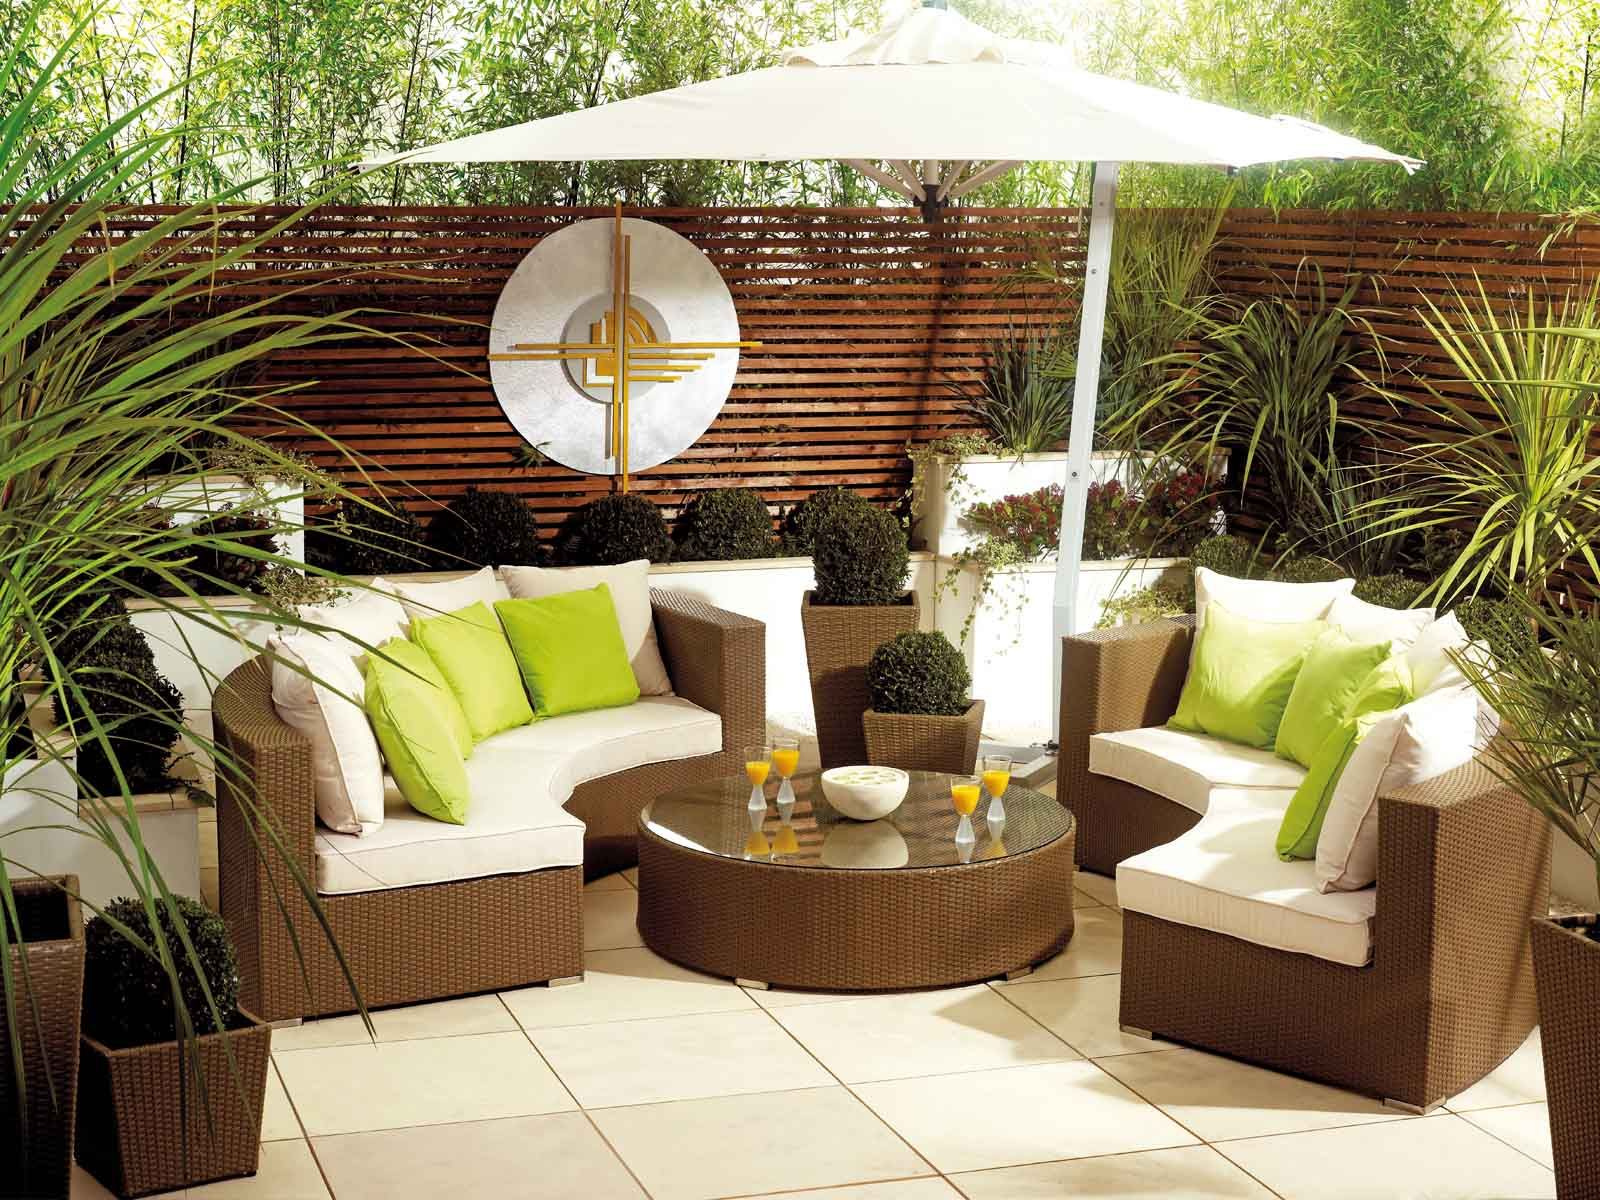 20 beautiful outdoor living room designs that will delight you rattan garden furniture modern - Outdoor design ideas for small outdoor space photos ...